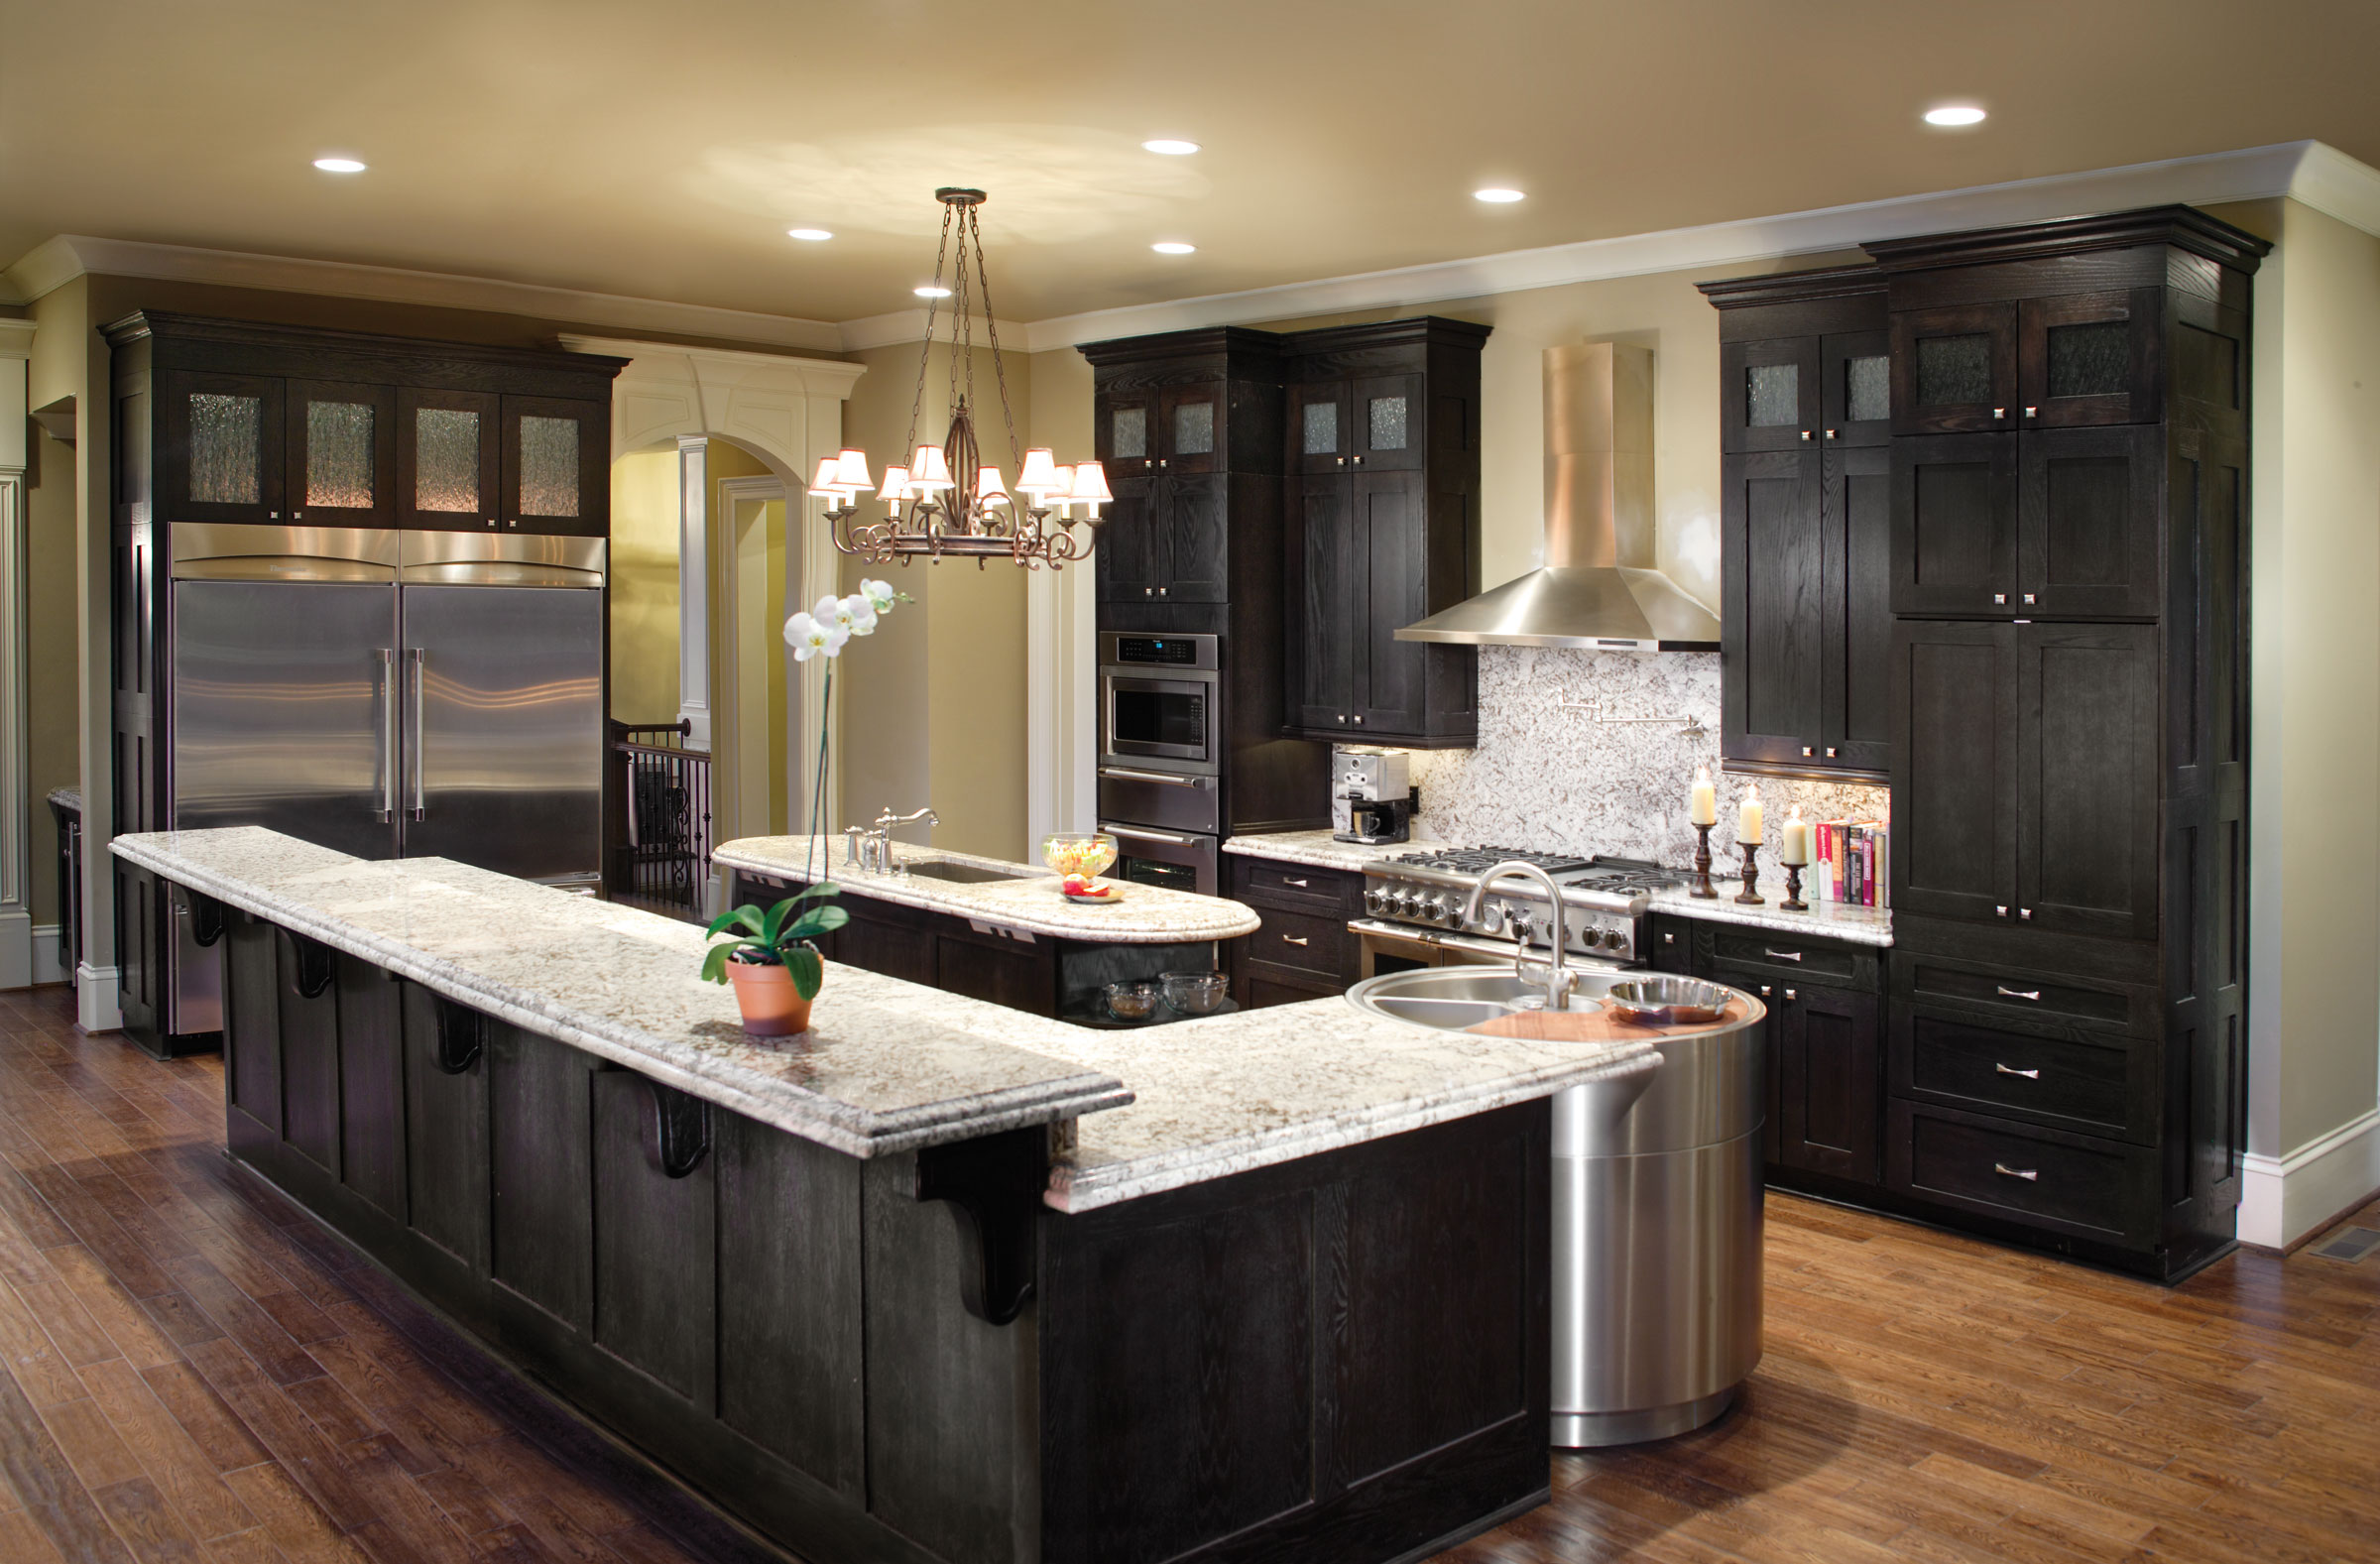 Custom bathroom kitchen cabinets phoenix cabinets by Custom kitchens pictures